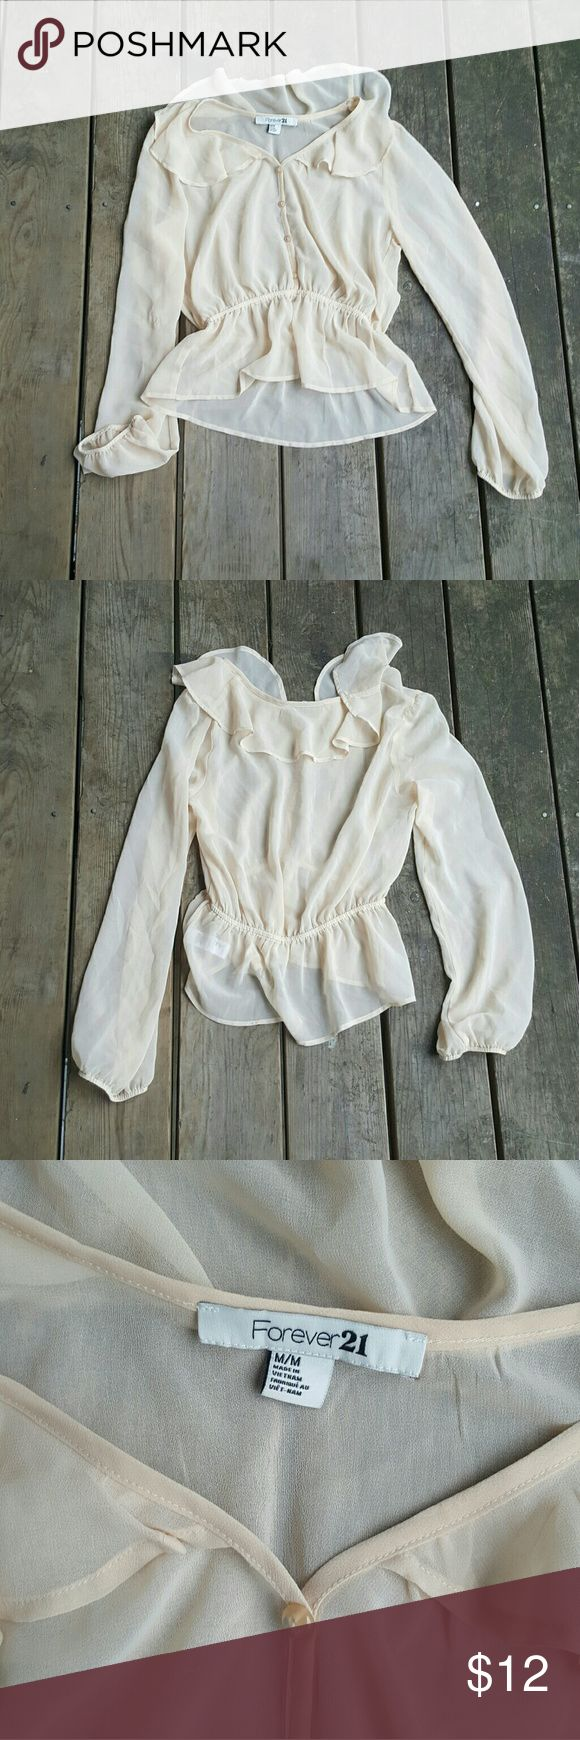 Cream peplum top Cream sheer peplum top with long sleeves. Buttons in front, elastic cuffs. No major flaws, great condition!! Brand is Forever 21, size M, medium.  Every purchase comes with a makeup gift! Forever 21 Tops Blouses